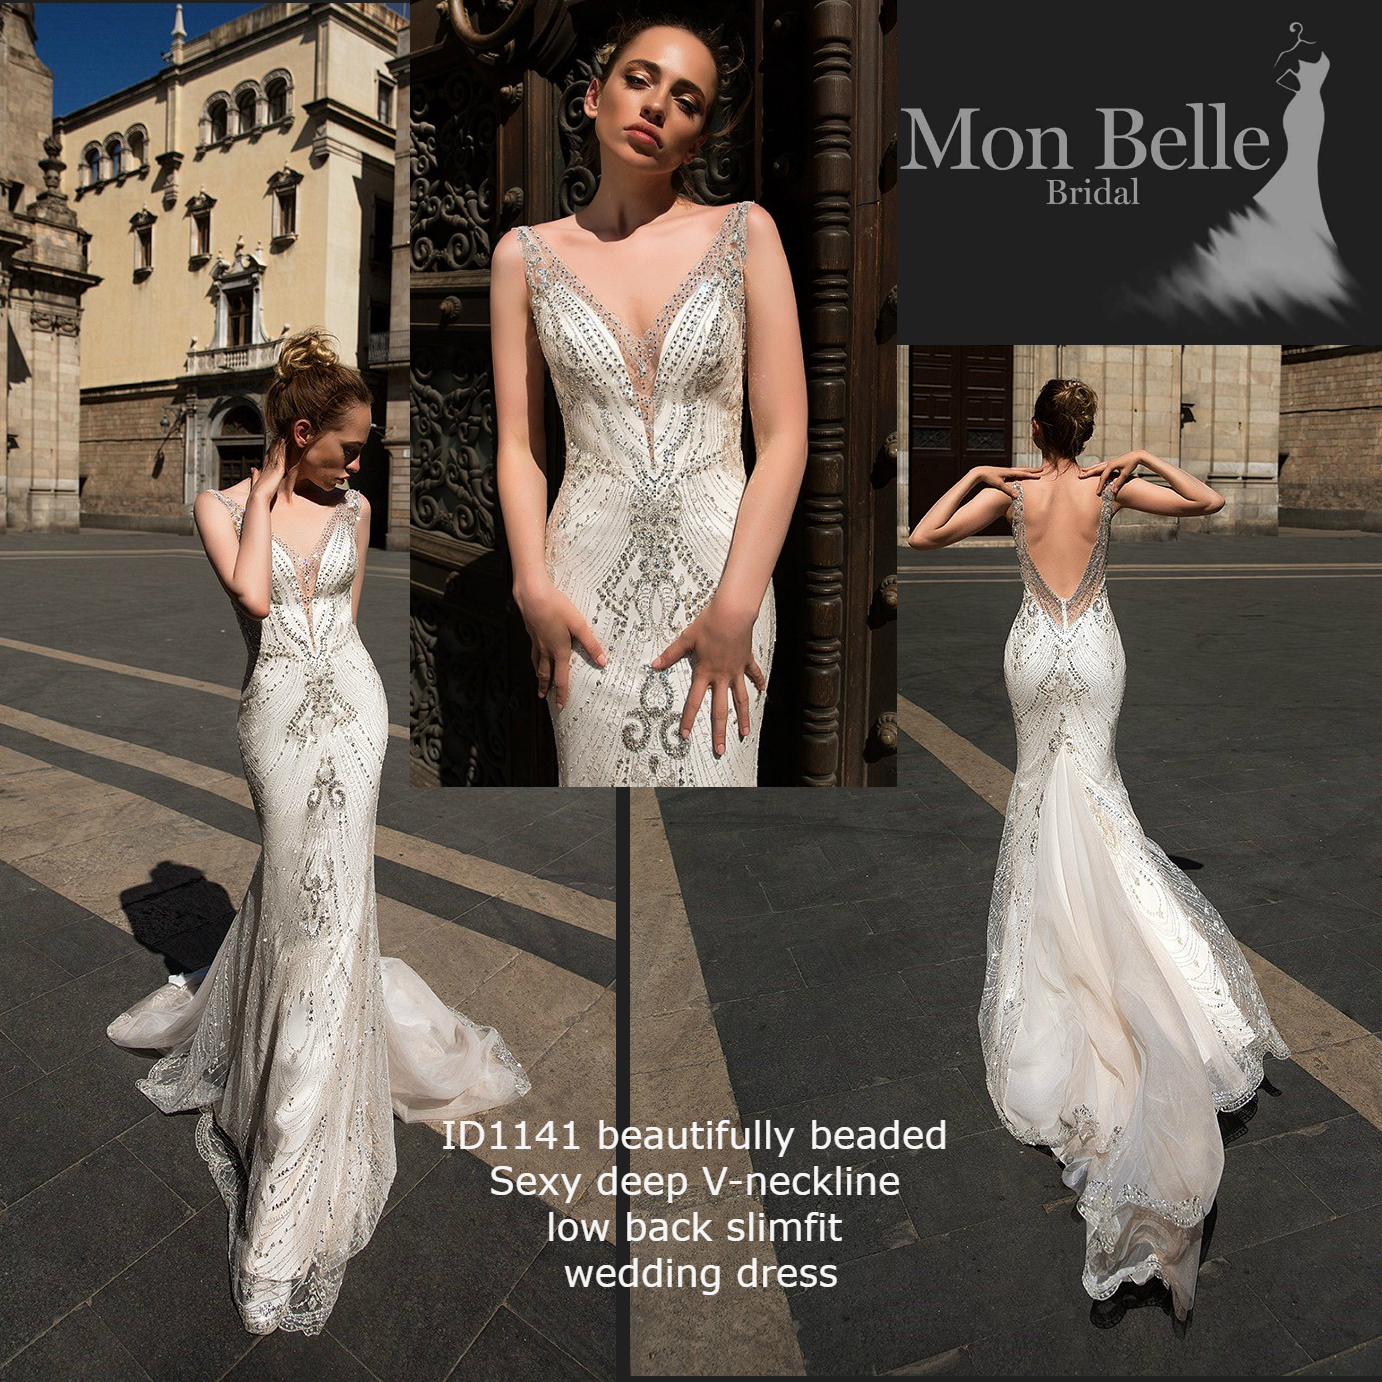 ID1141 beautifully beaded sexy deep V-neckline low back slimfit mermaid unique wedding dress